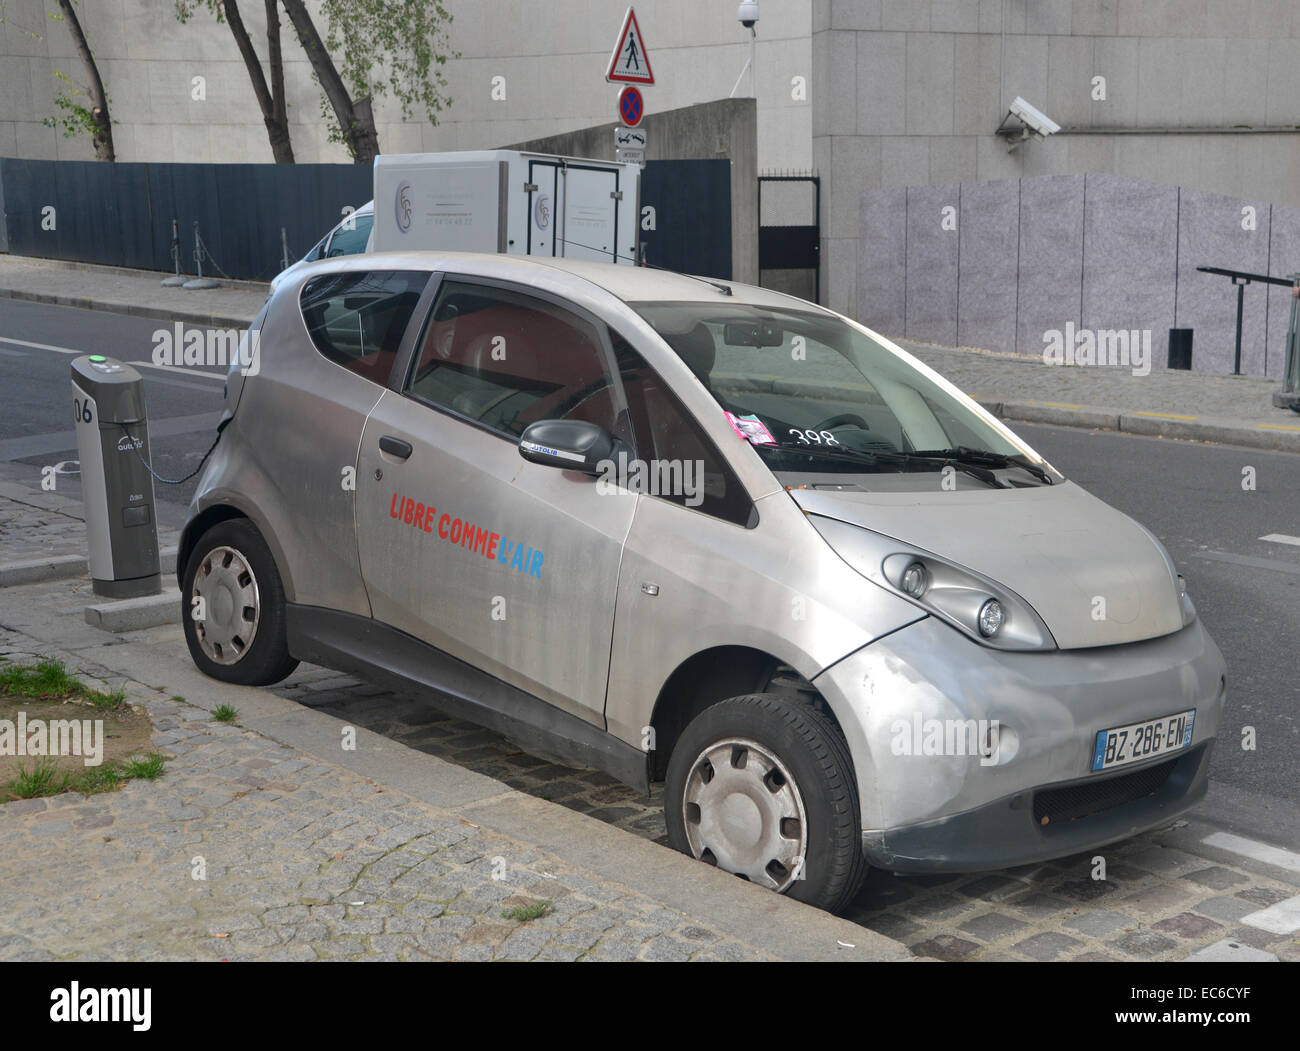 Autolib' car share scheme electric car parked badly in Paris - Stock Image